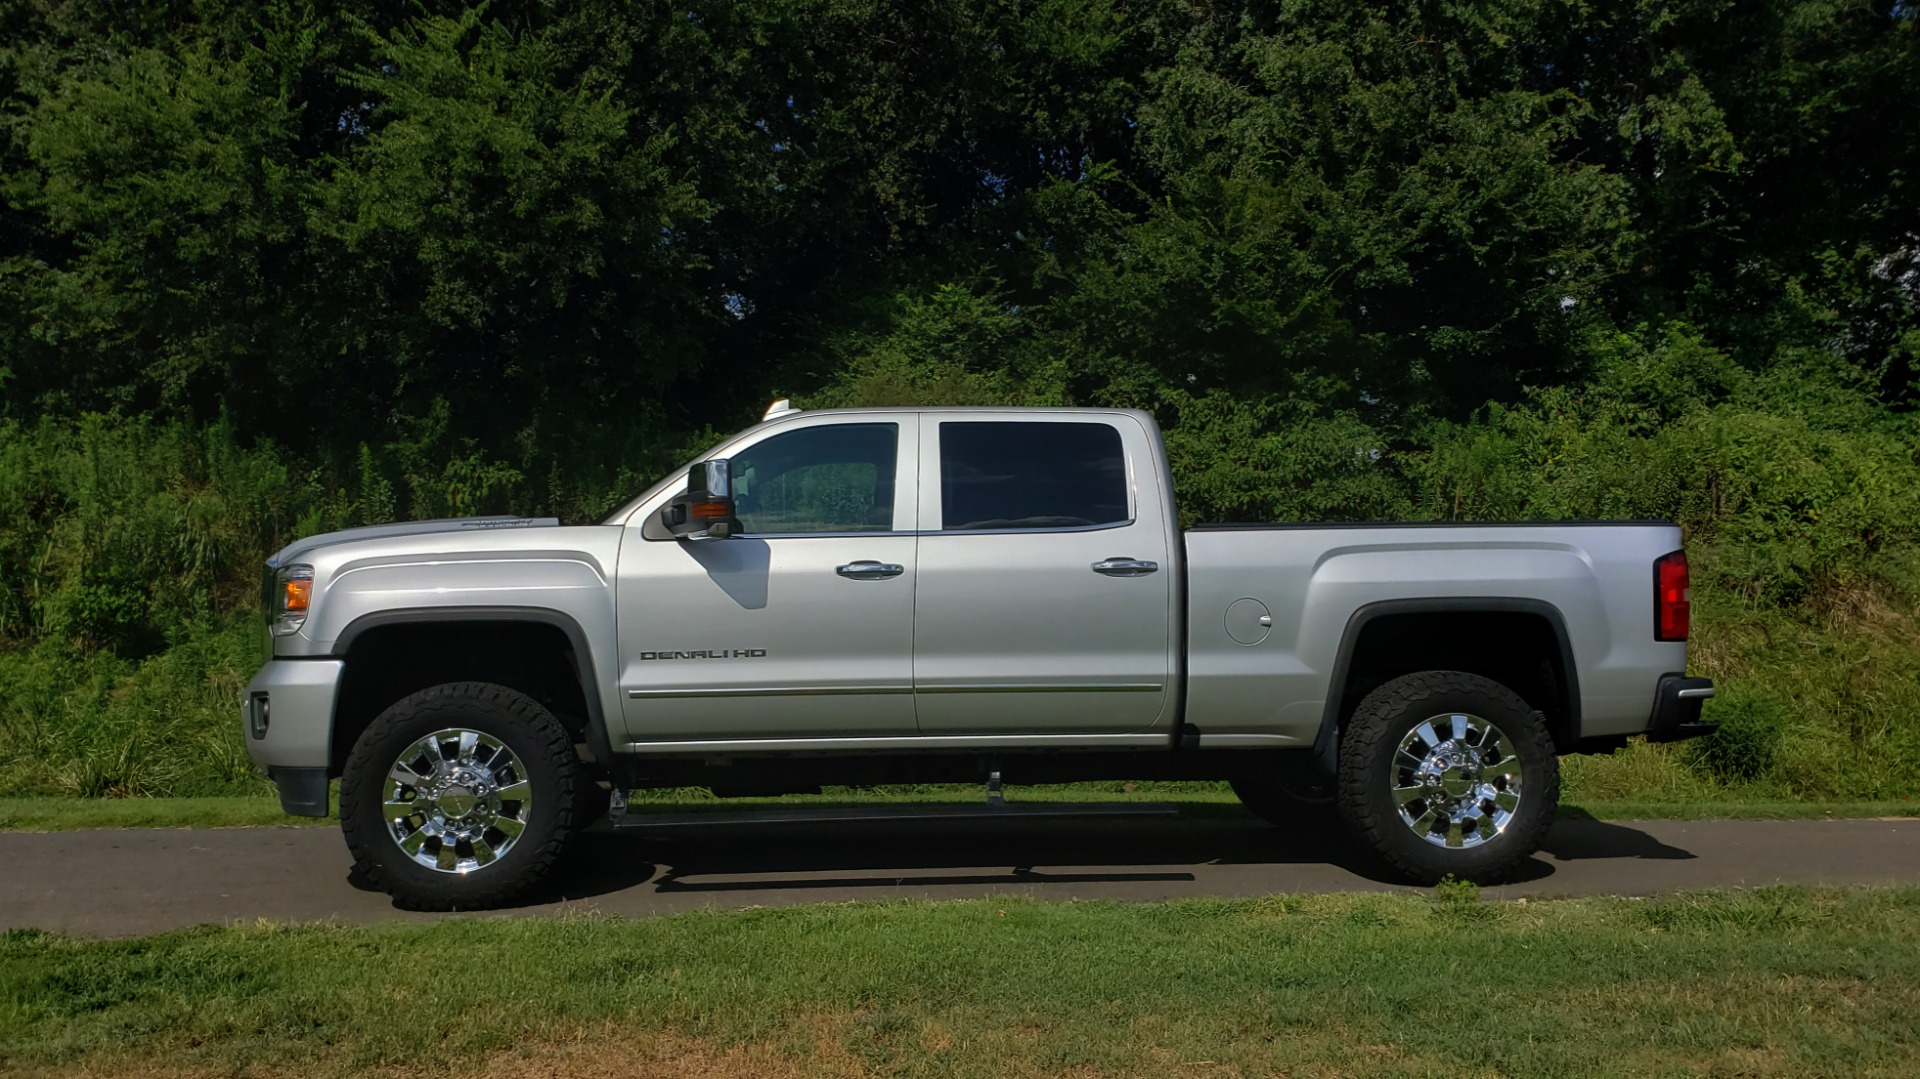 Used 2018 GMC SIERRA 2500HD DENALI 4WD / 6.6L DURAMAX / NAV / SUNROOF / BOSE / REARVIEW for sale Sold at Formula Imports in Charlotte NC 28227 3